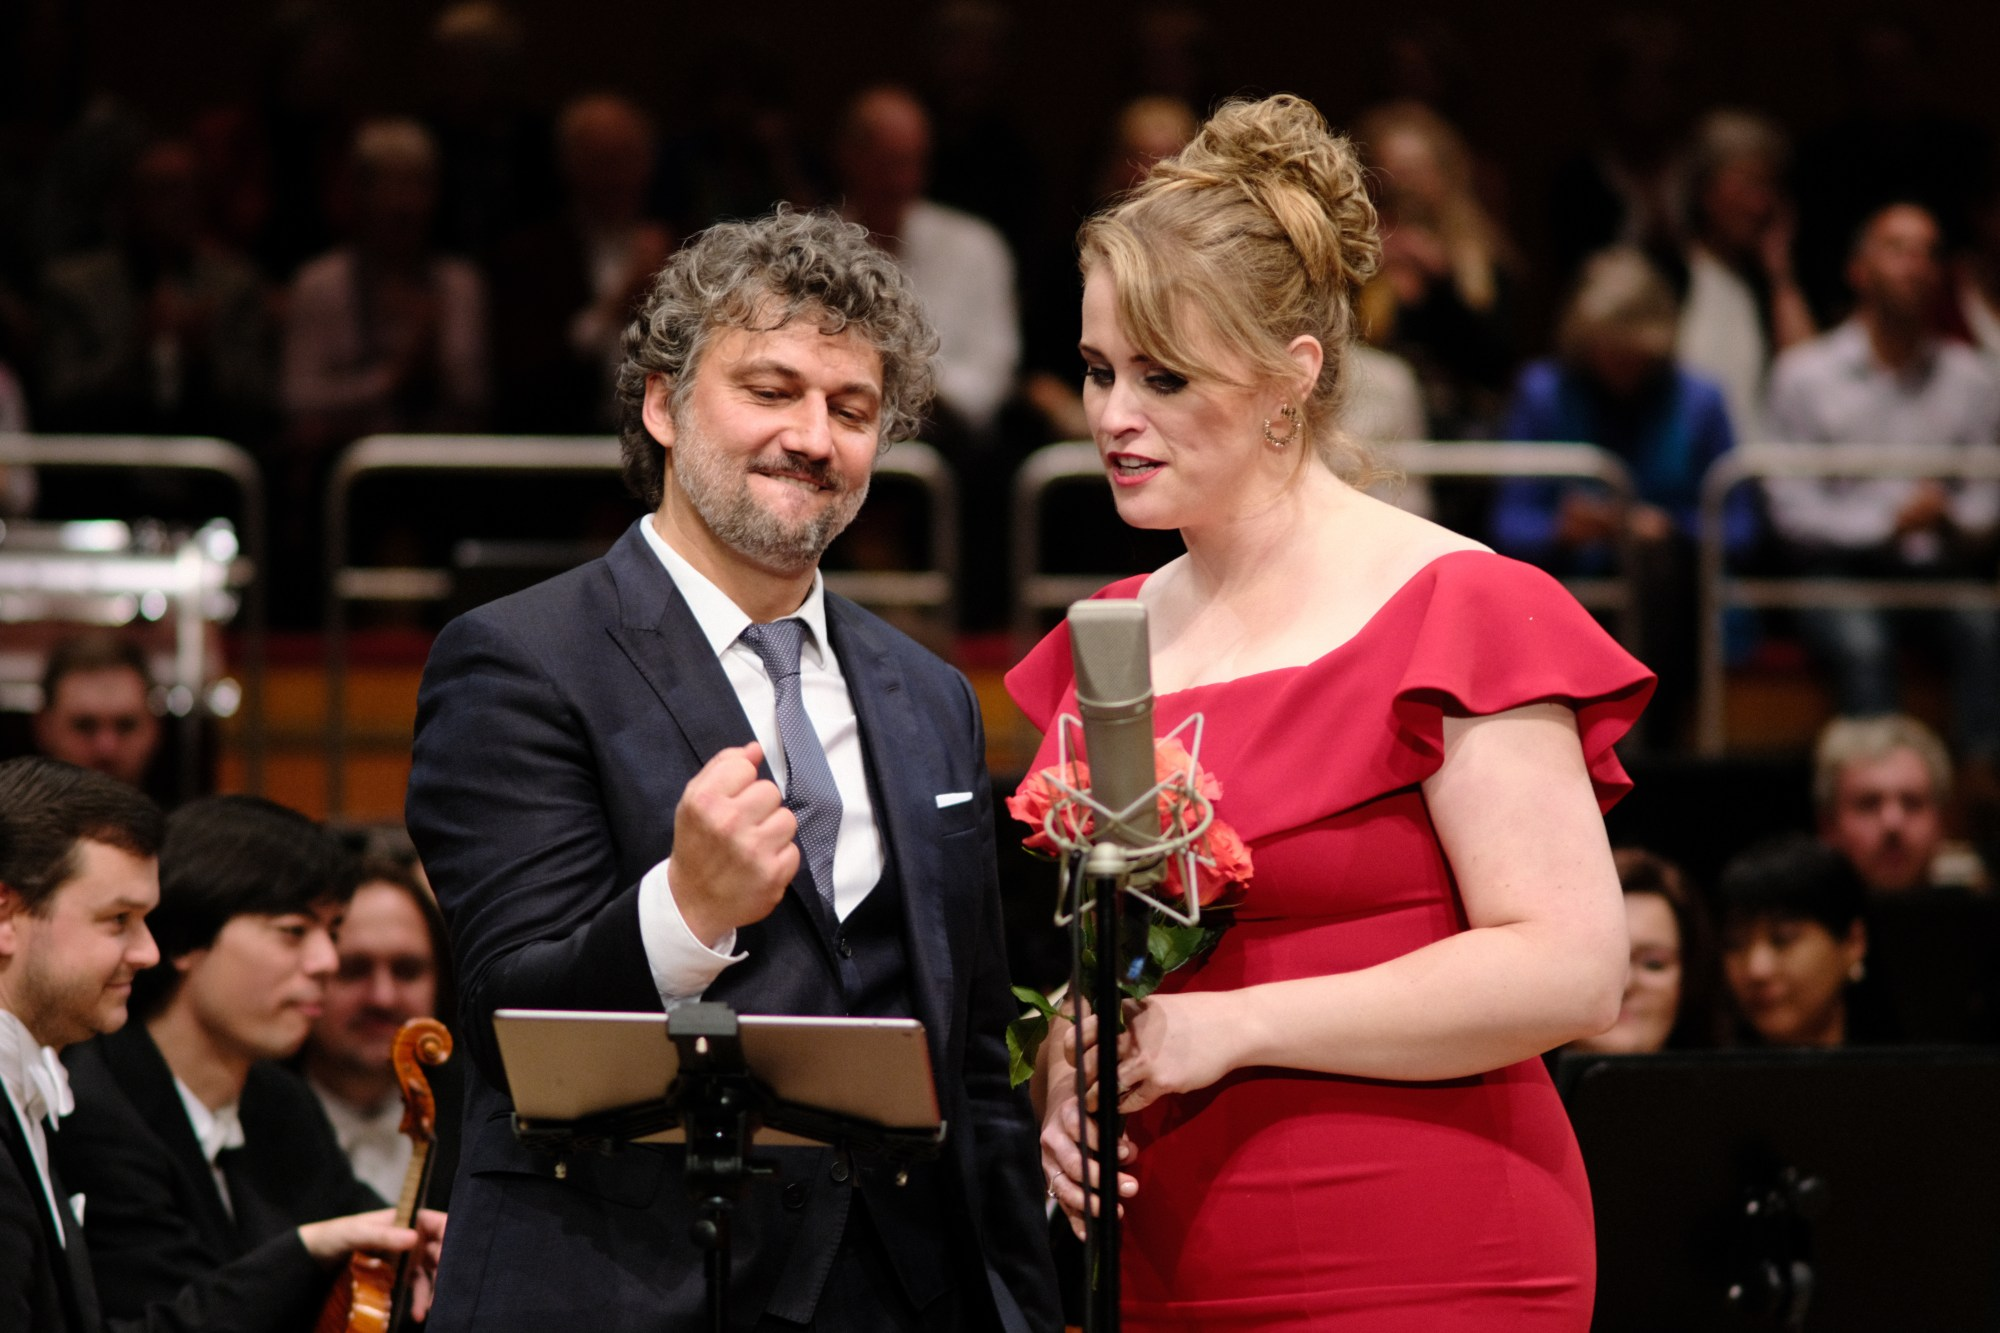 Jonas Kaufmann and Rachel Willis-Sørensen on stage